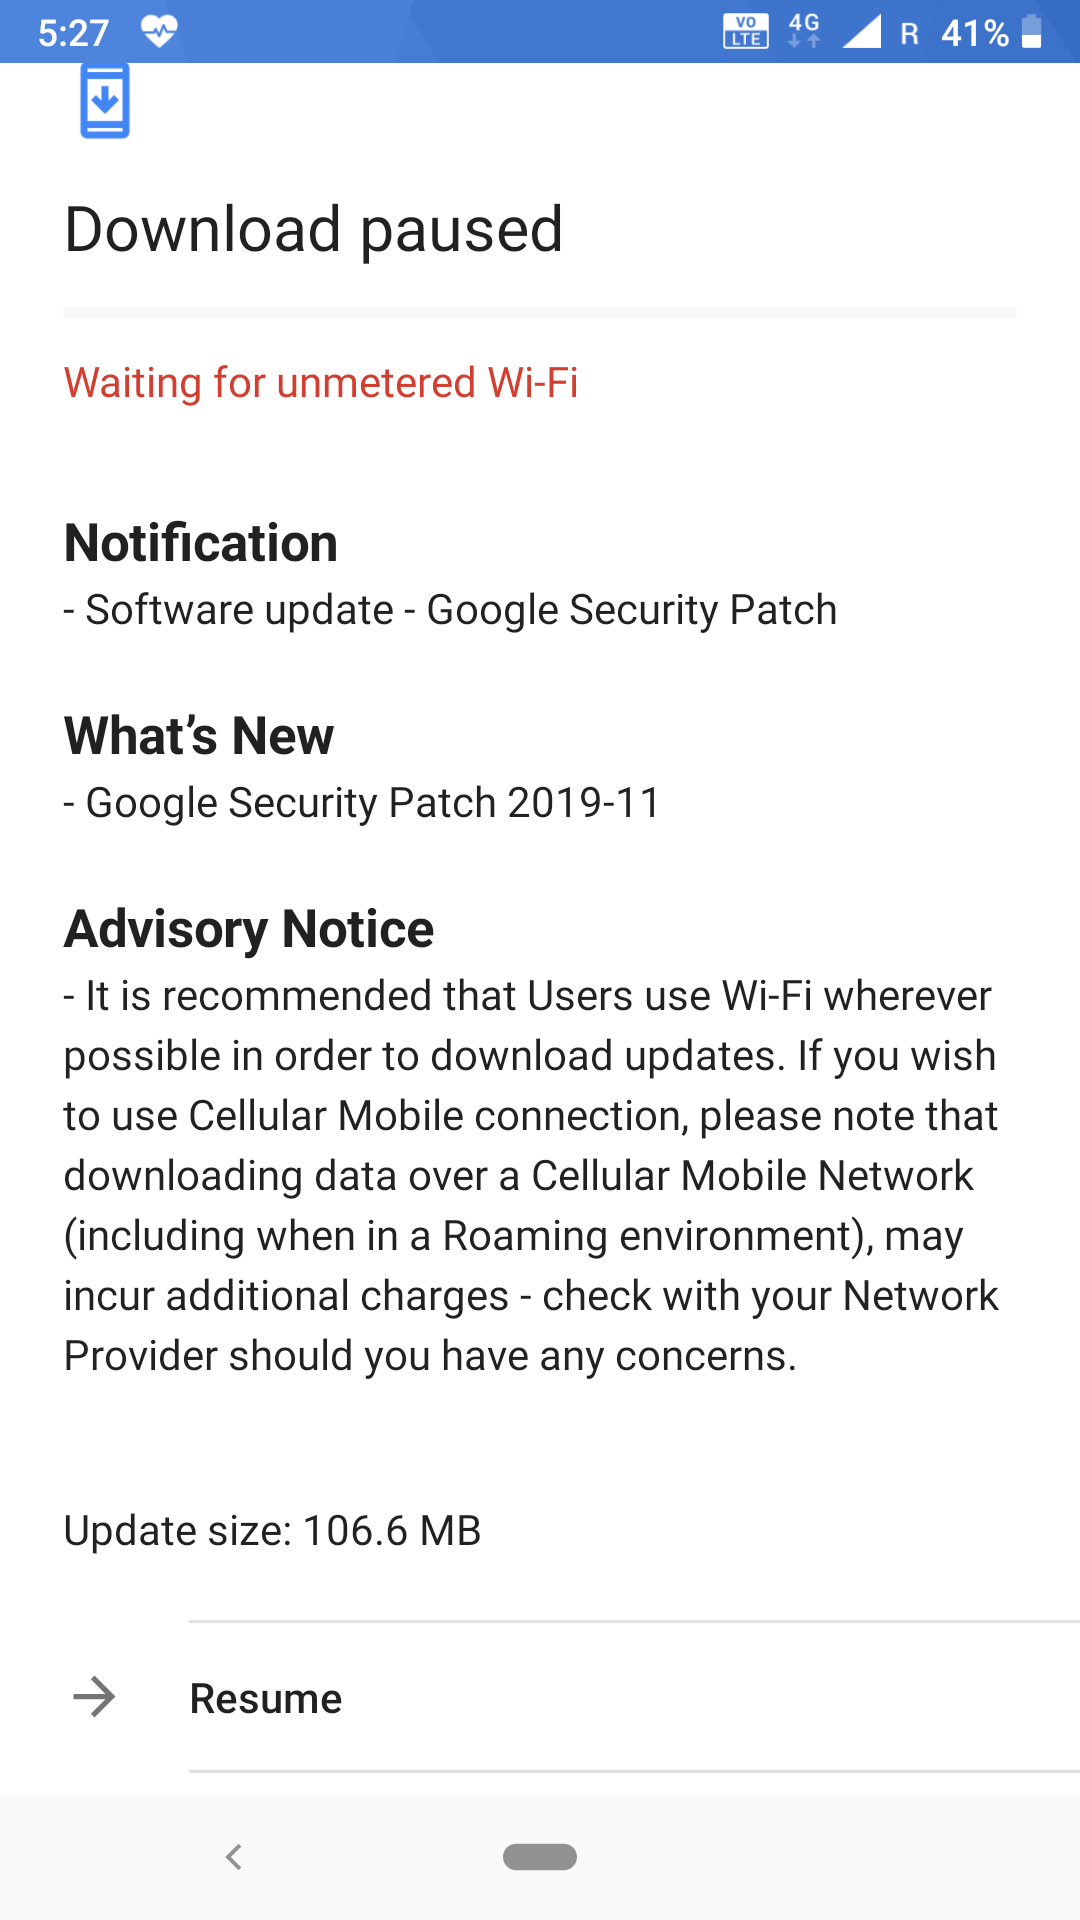 Nokia 6.1 Update V3.54I_SP03 Available with New Information